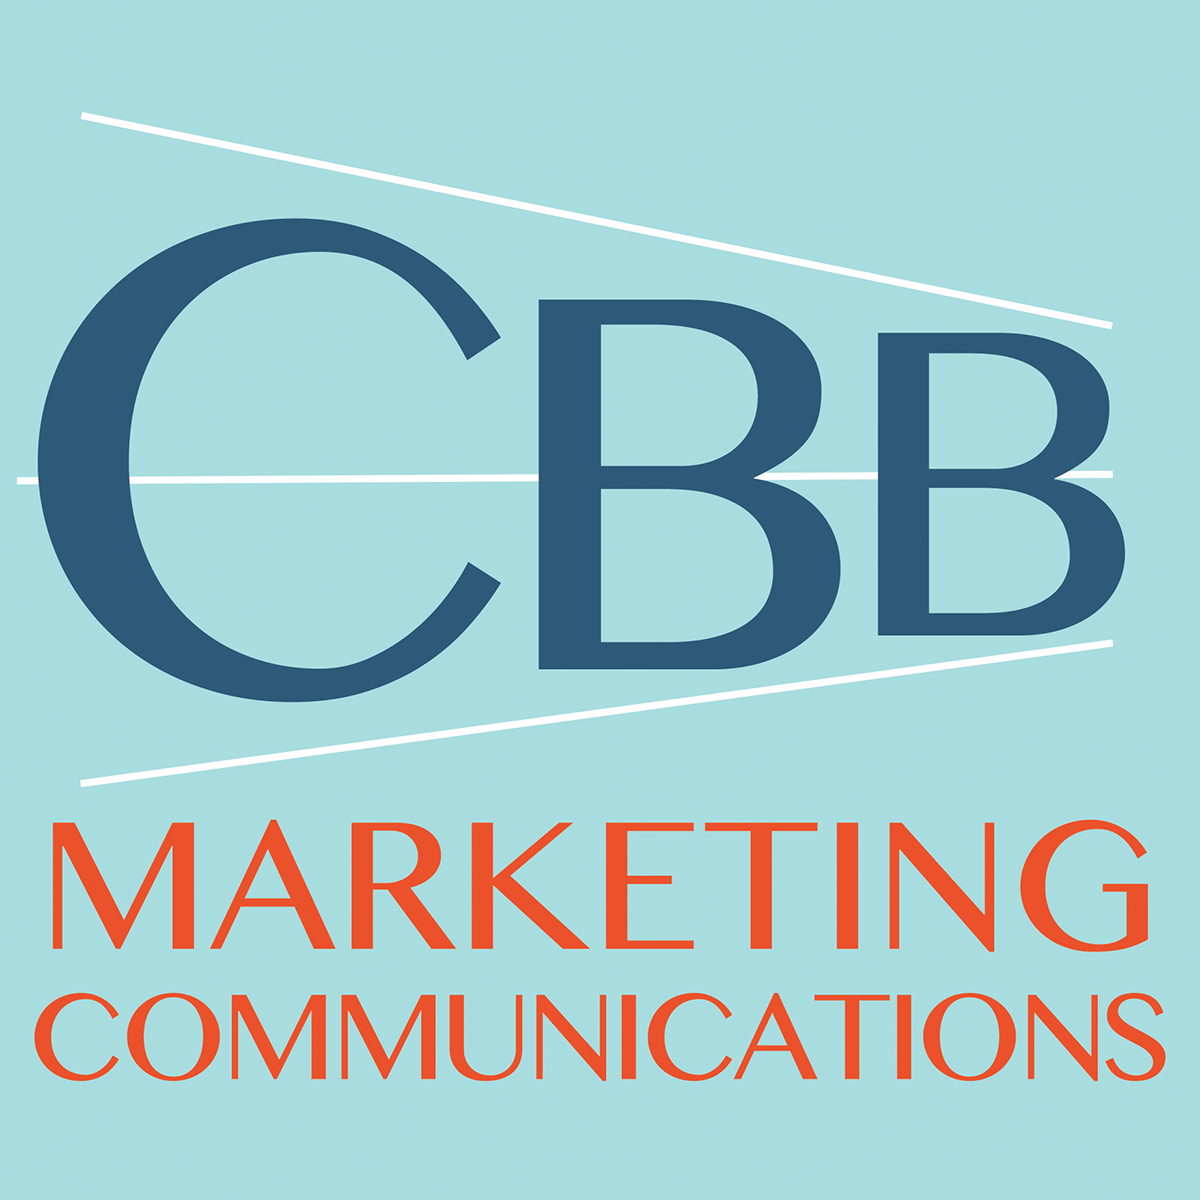 Carol Bosco Baumann Marketing Communications Consulting